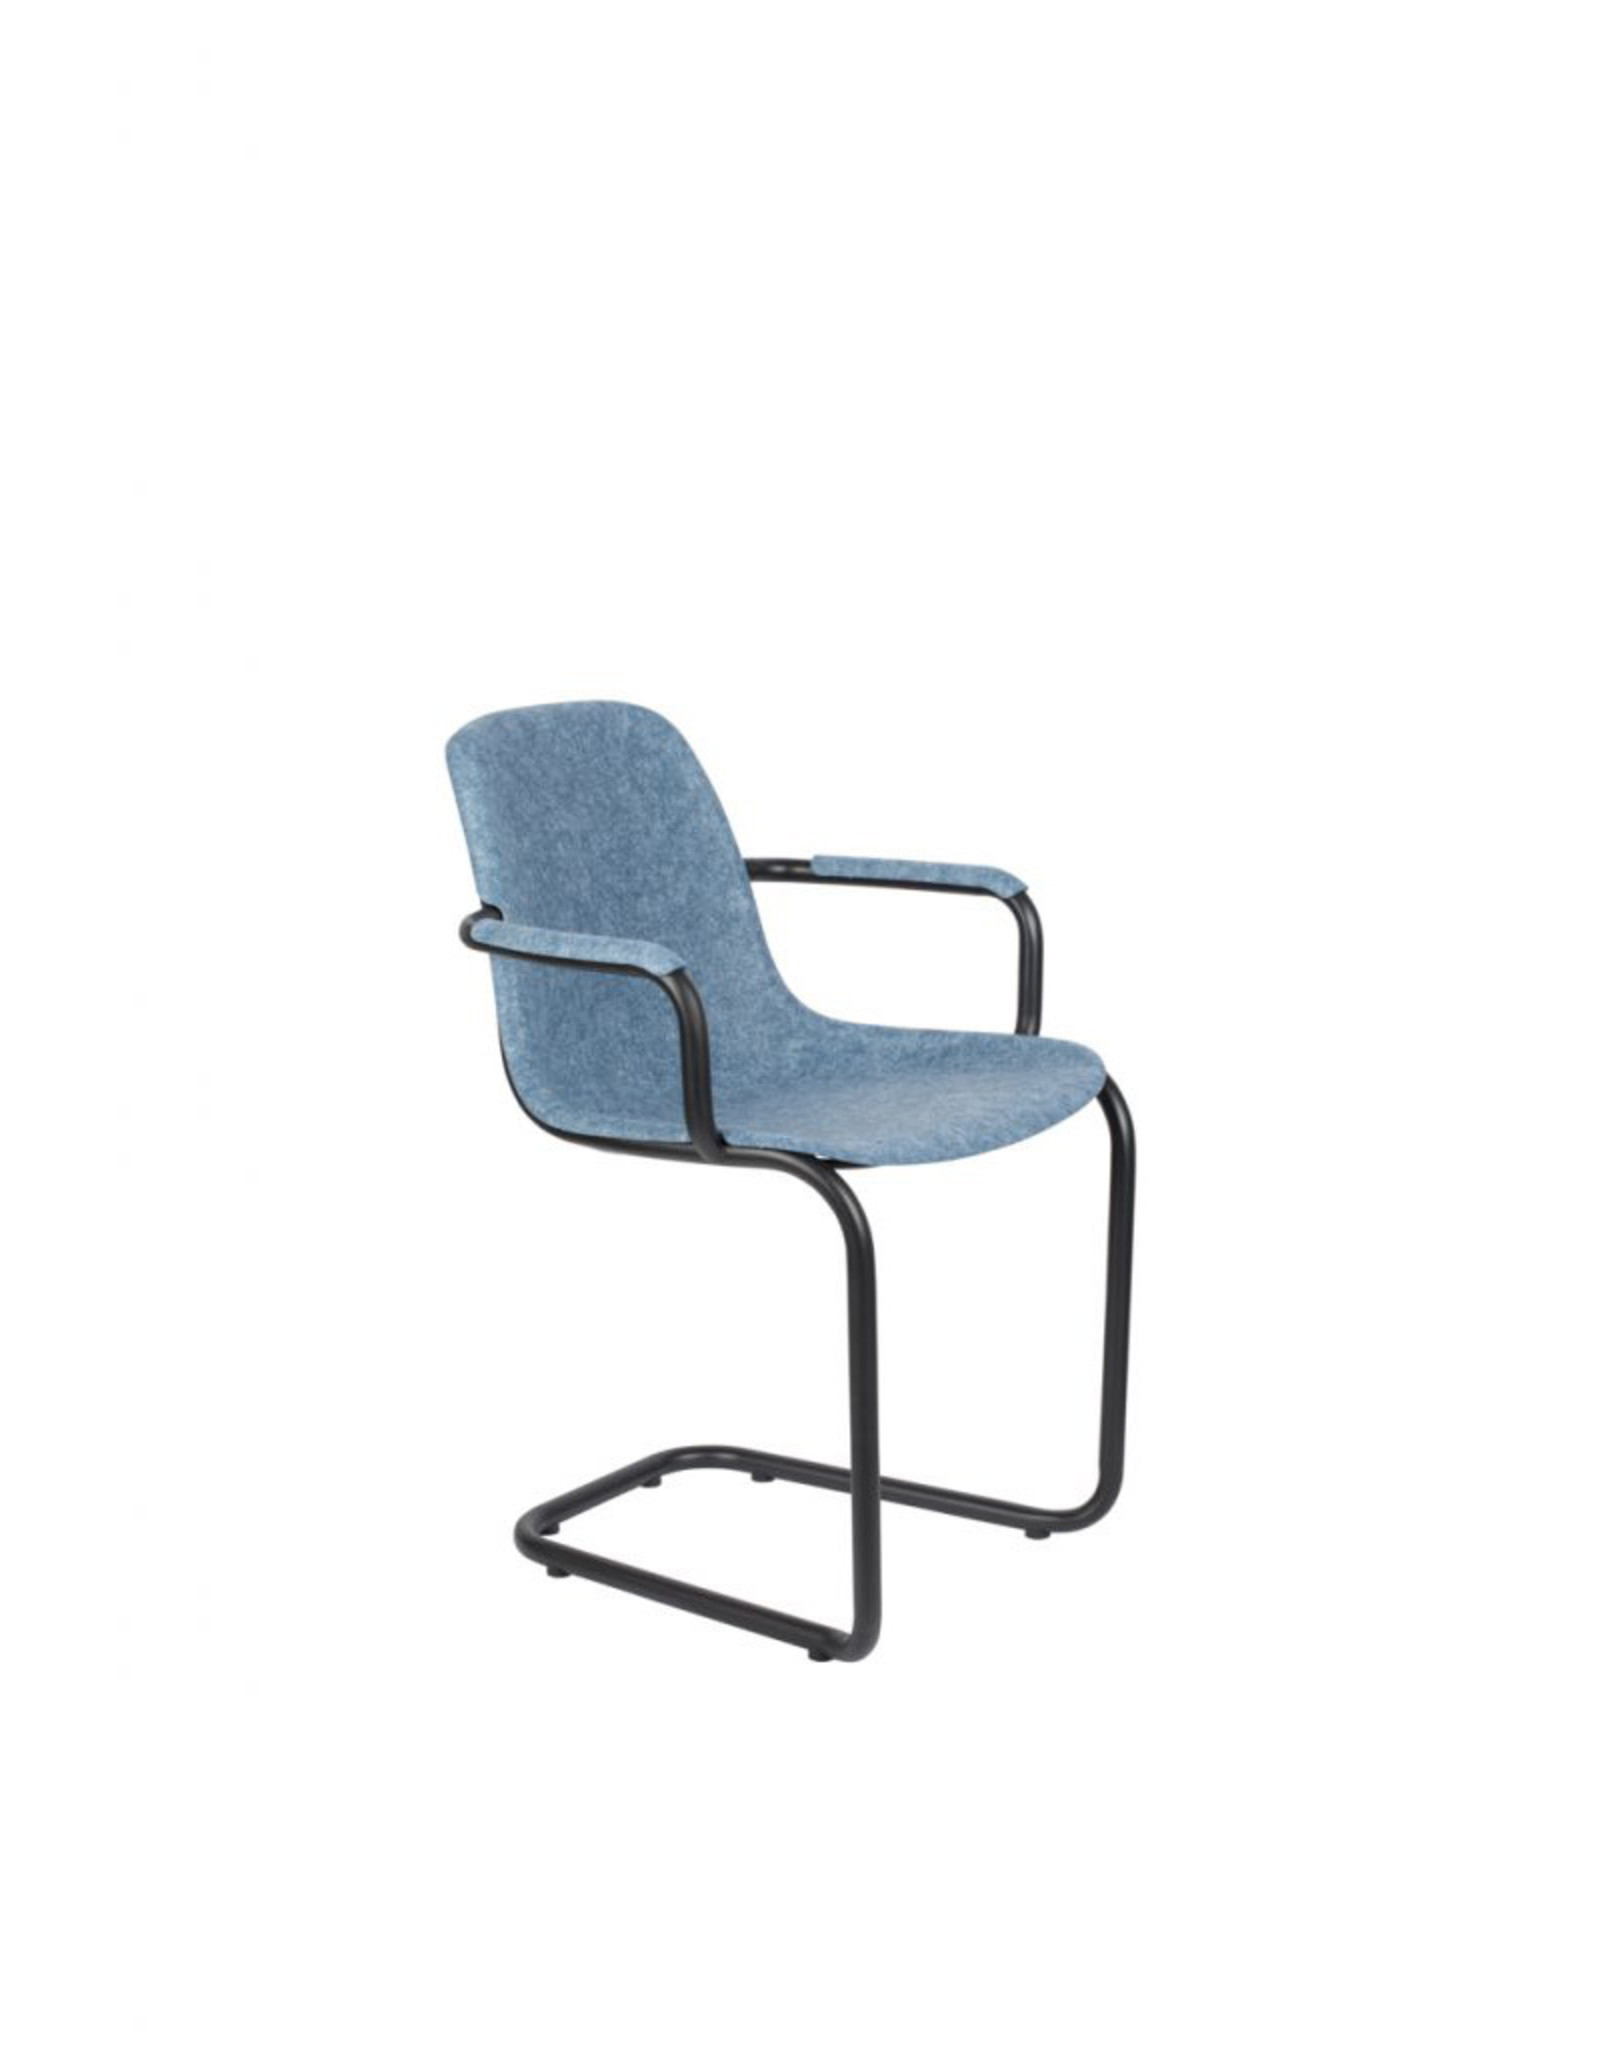 ZUIVER BV Thirsty Armchair (set of 2)